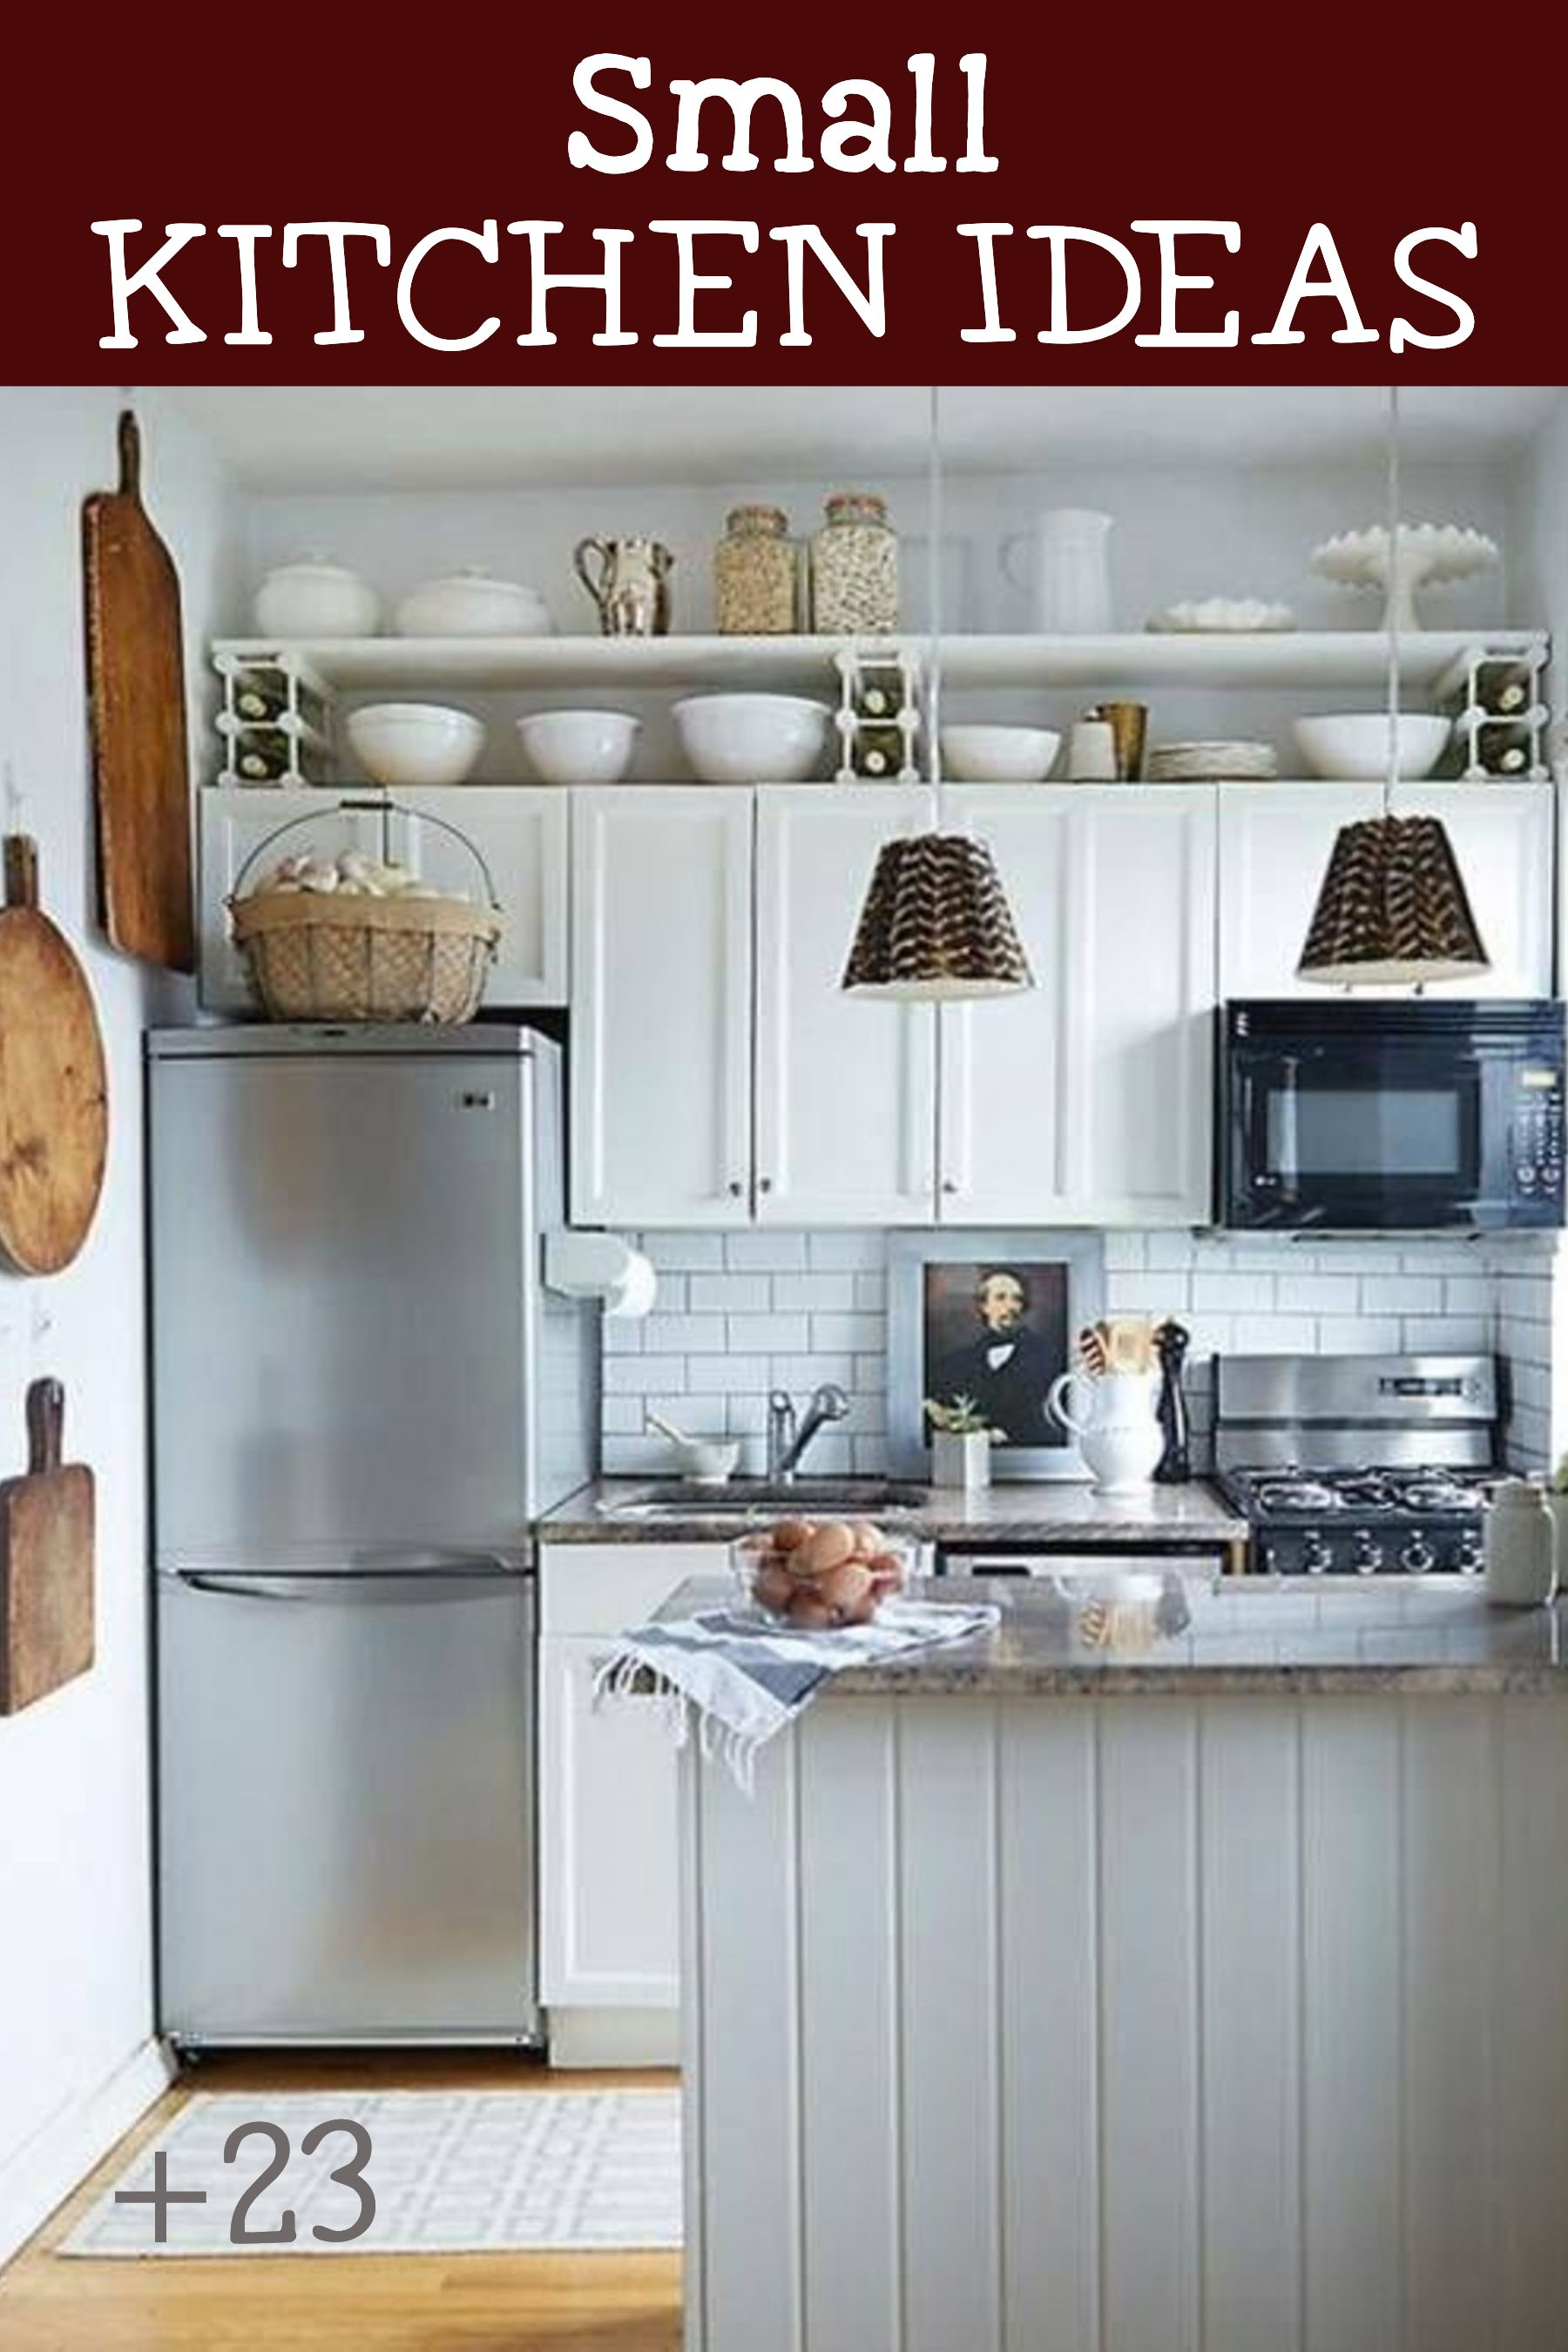 Tiny Kitchen Decor And Remodeling Ideas We Love Tiny House Kitchen Small Space Kitchen Kitchen Design Small